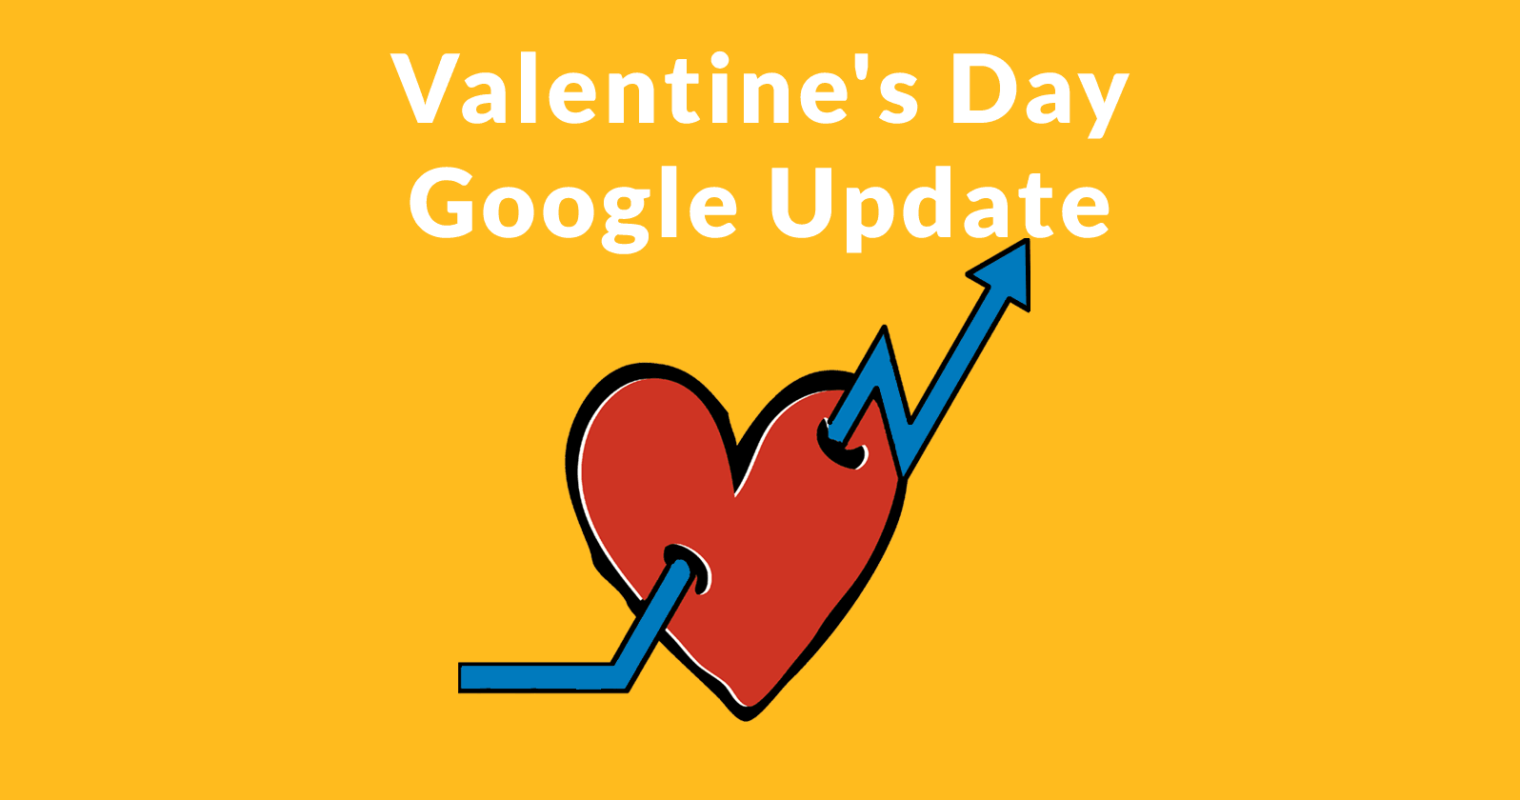 https://res.cloudinary.com/dpyy9uysx/image/upload/v1550121733/seo/google-valentines-day-update-SEO%20-warriors.png